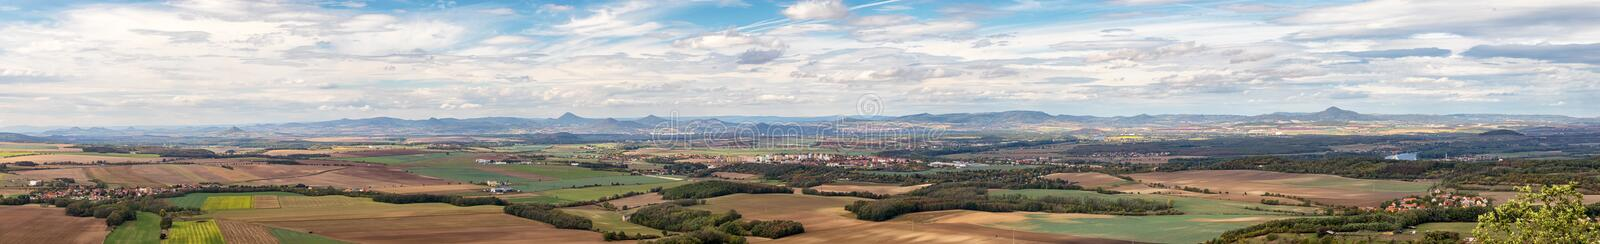 Rural landscape panorama with villages, fields and mountains in the background royalty free stock image